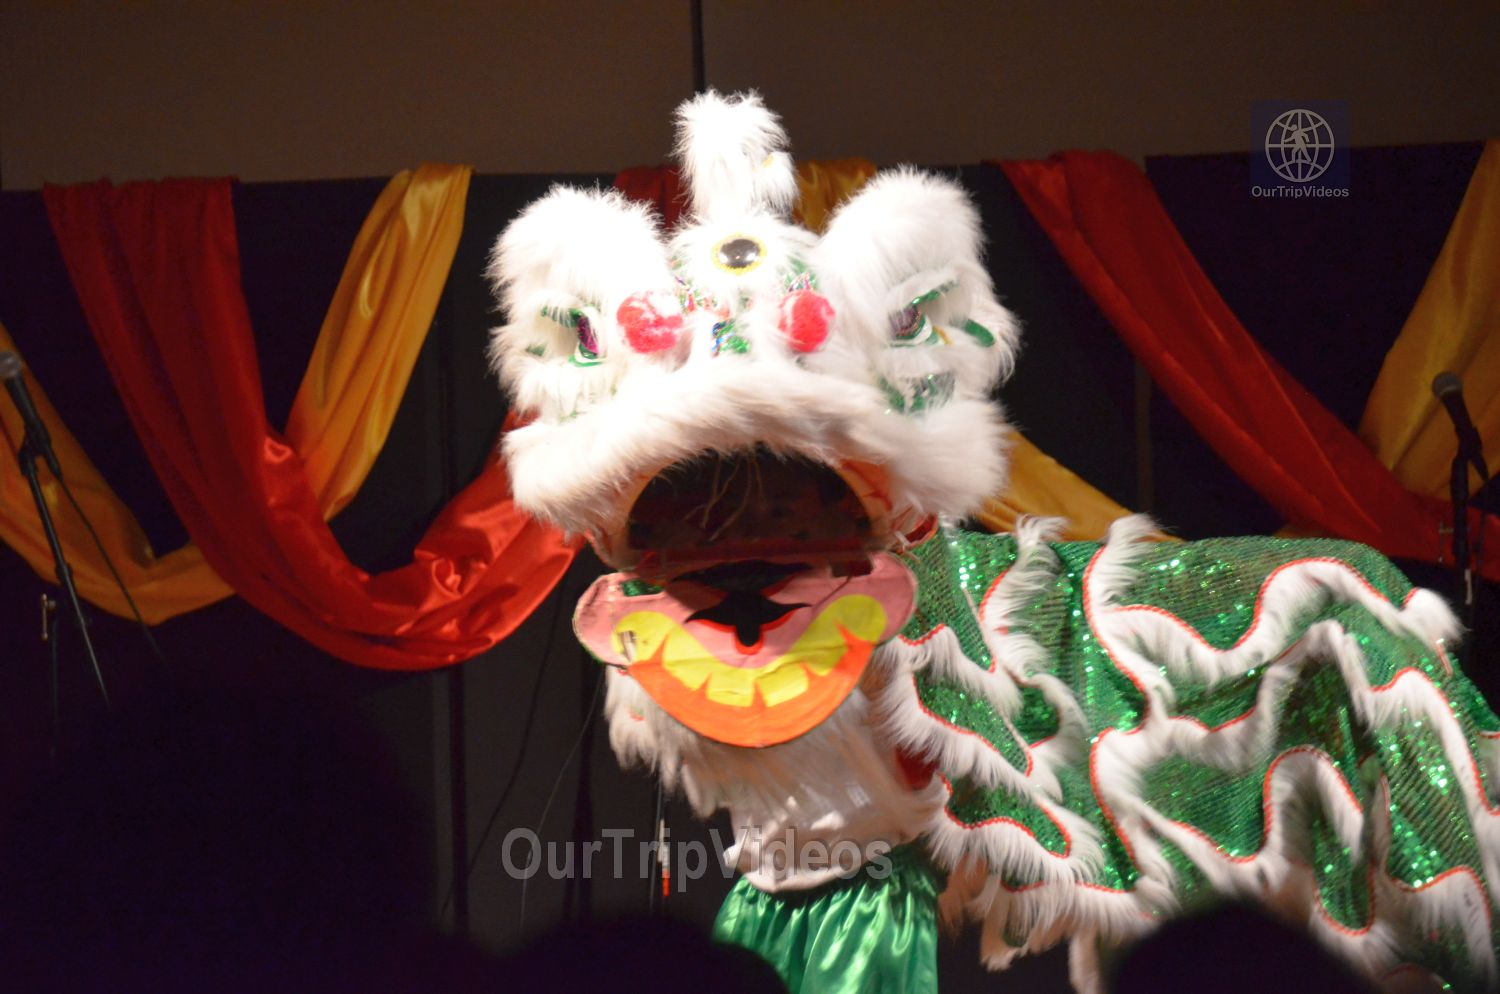 Chinese Lunar New Year Celebration, Milpitas, CA, USA - Picture 24 of 25